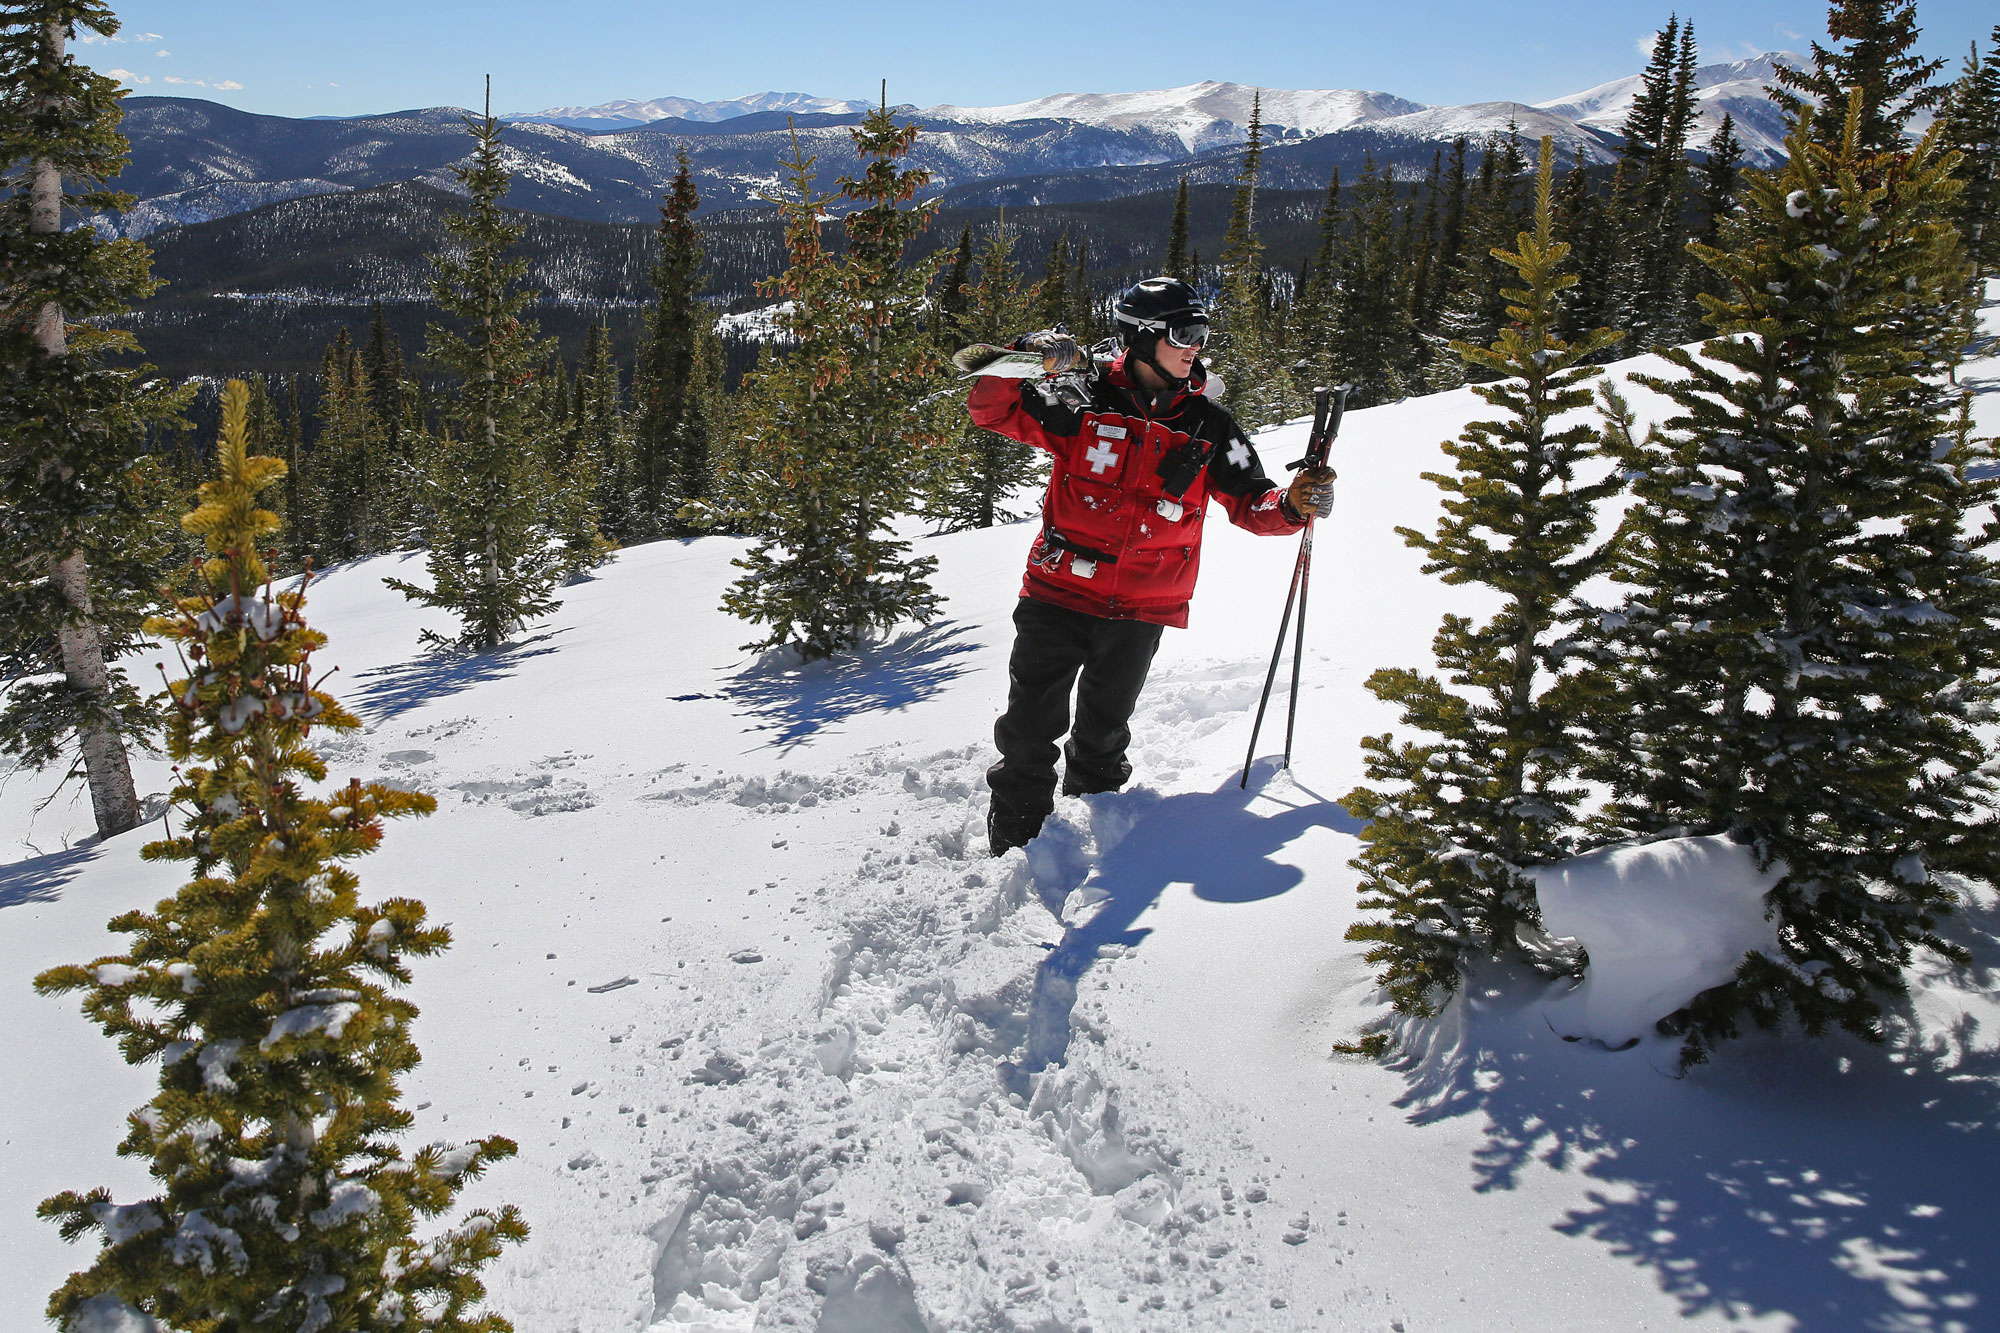 <p>Eldora ski patroller Adam Clifton checks the density of the snow pack in a backcountry area of National Forest land adjacent to Corona Bowl, known for its extreme skiing, at Eldora Mountain Resort, near Nederland, Colo., Wednesday, Feb. 26, 2014.</p>